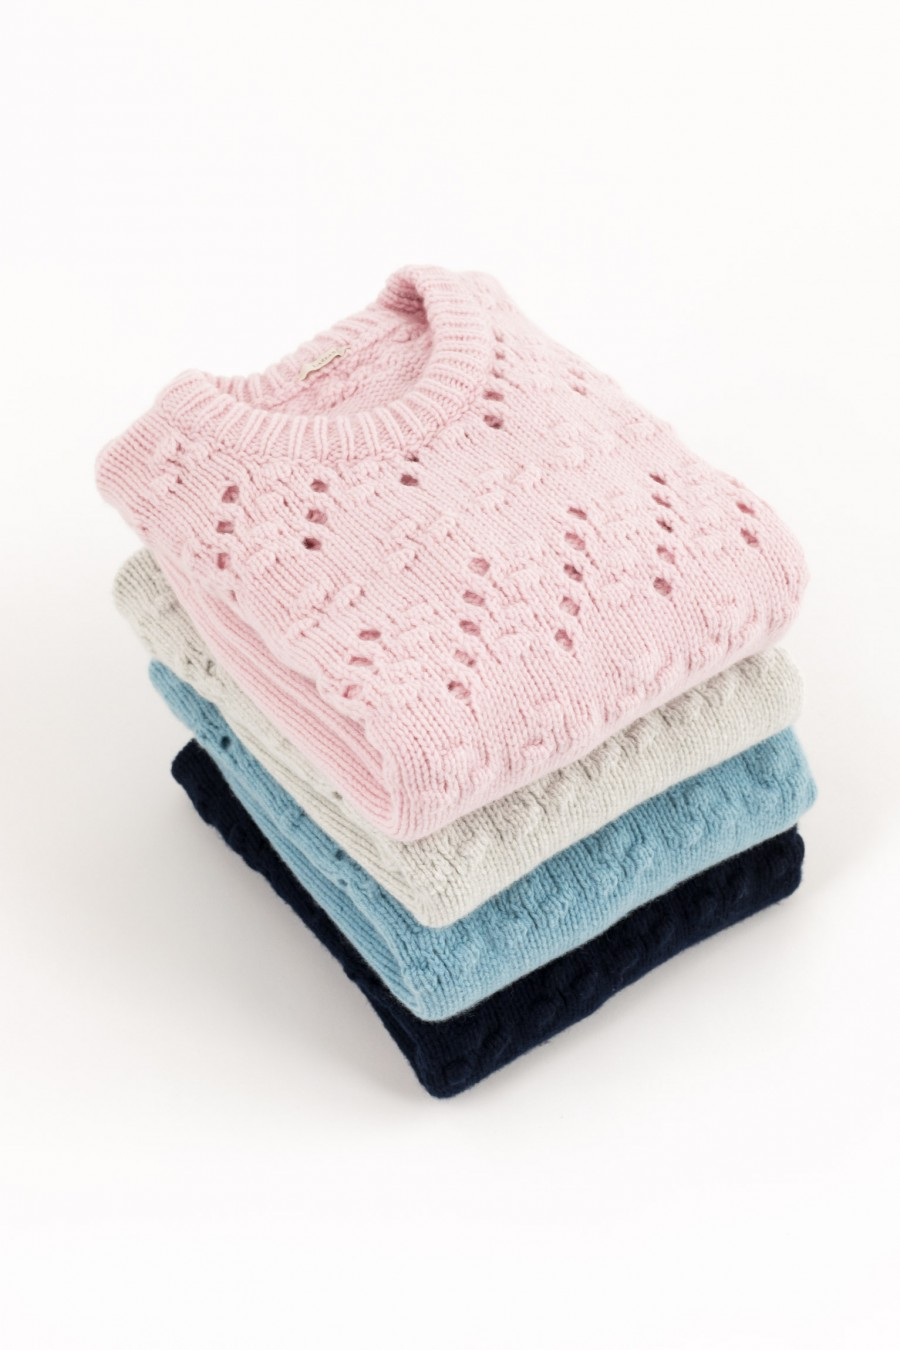 Lazzari colorful woolen jumpers